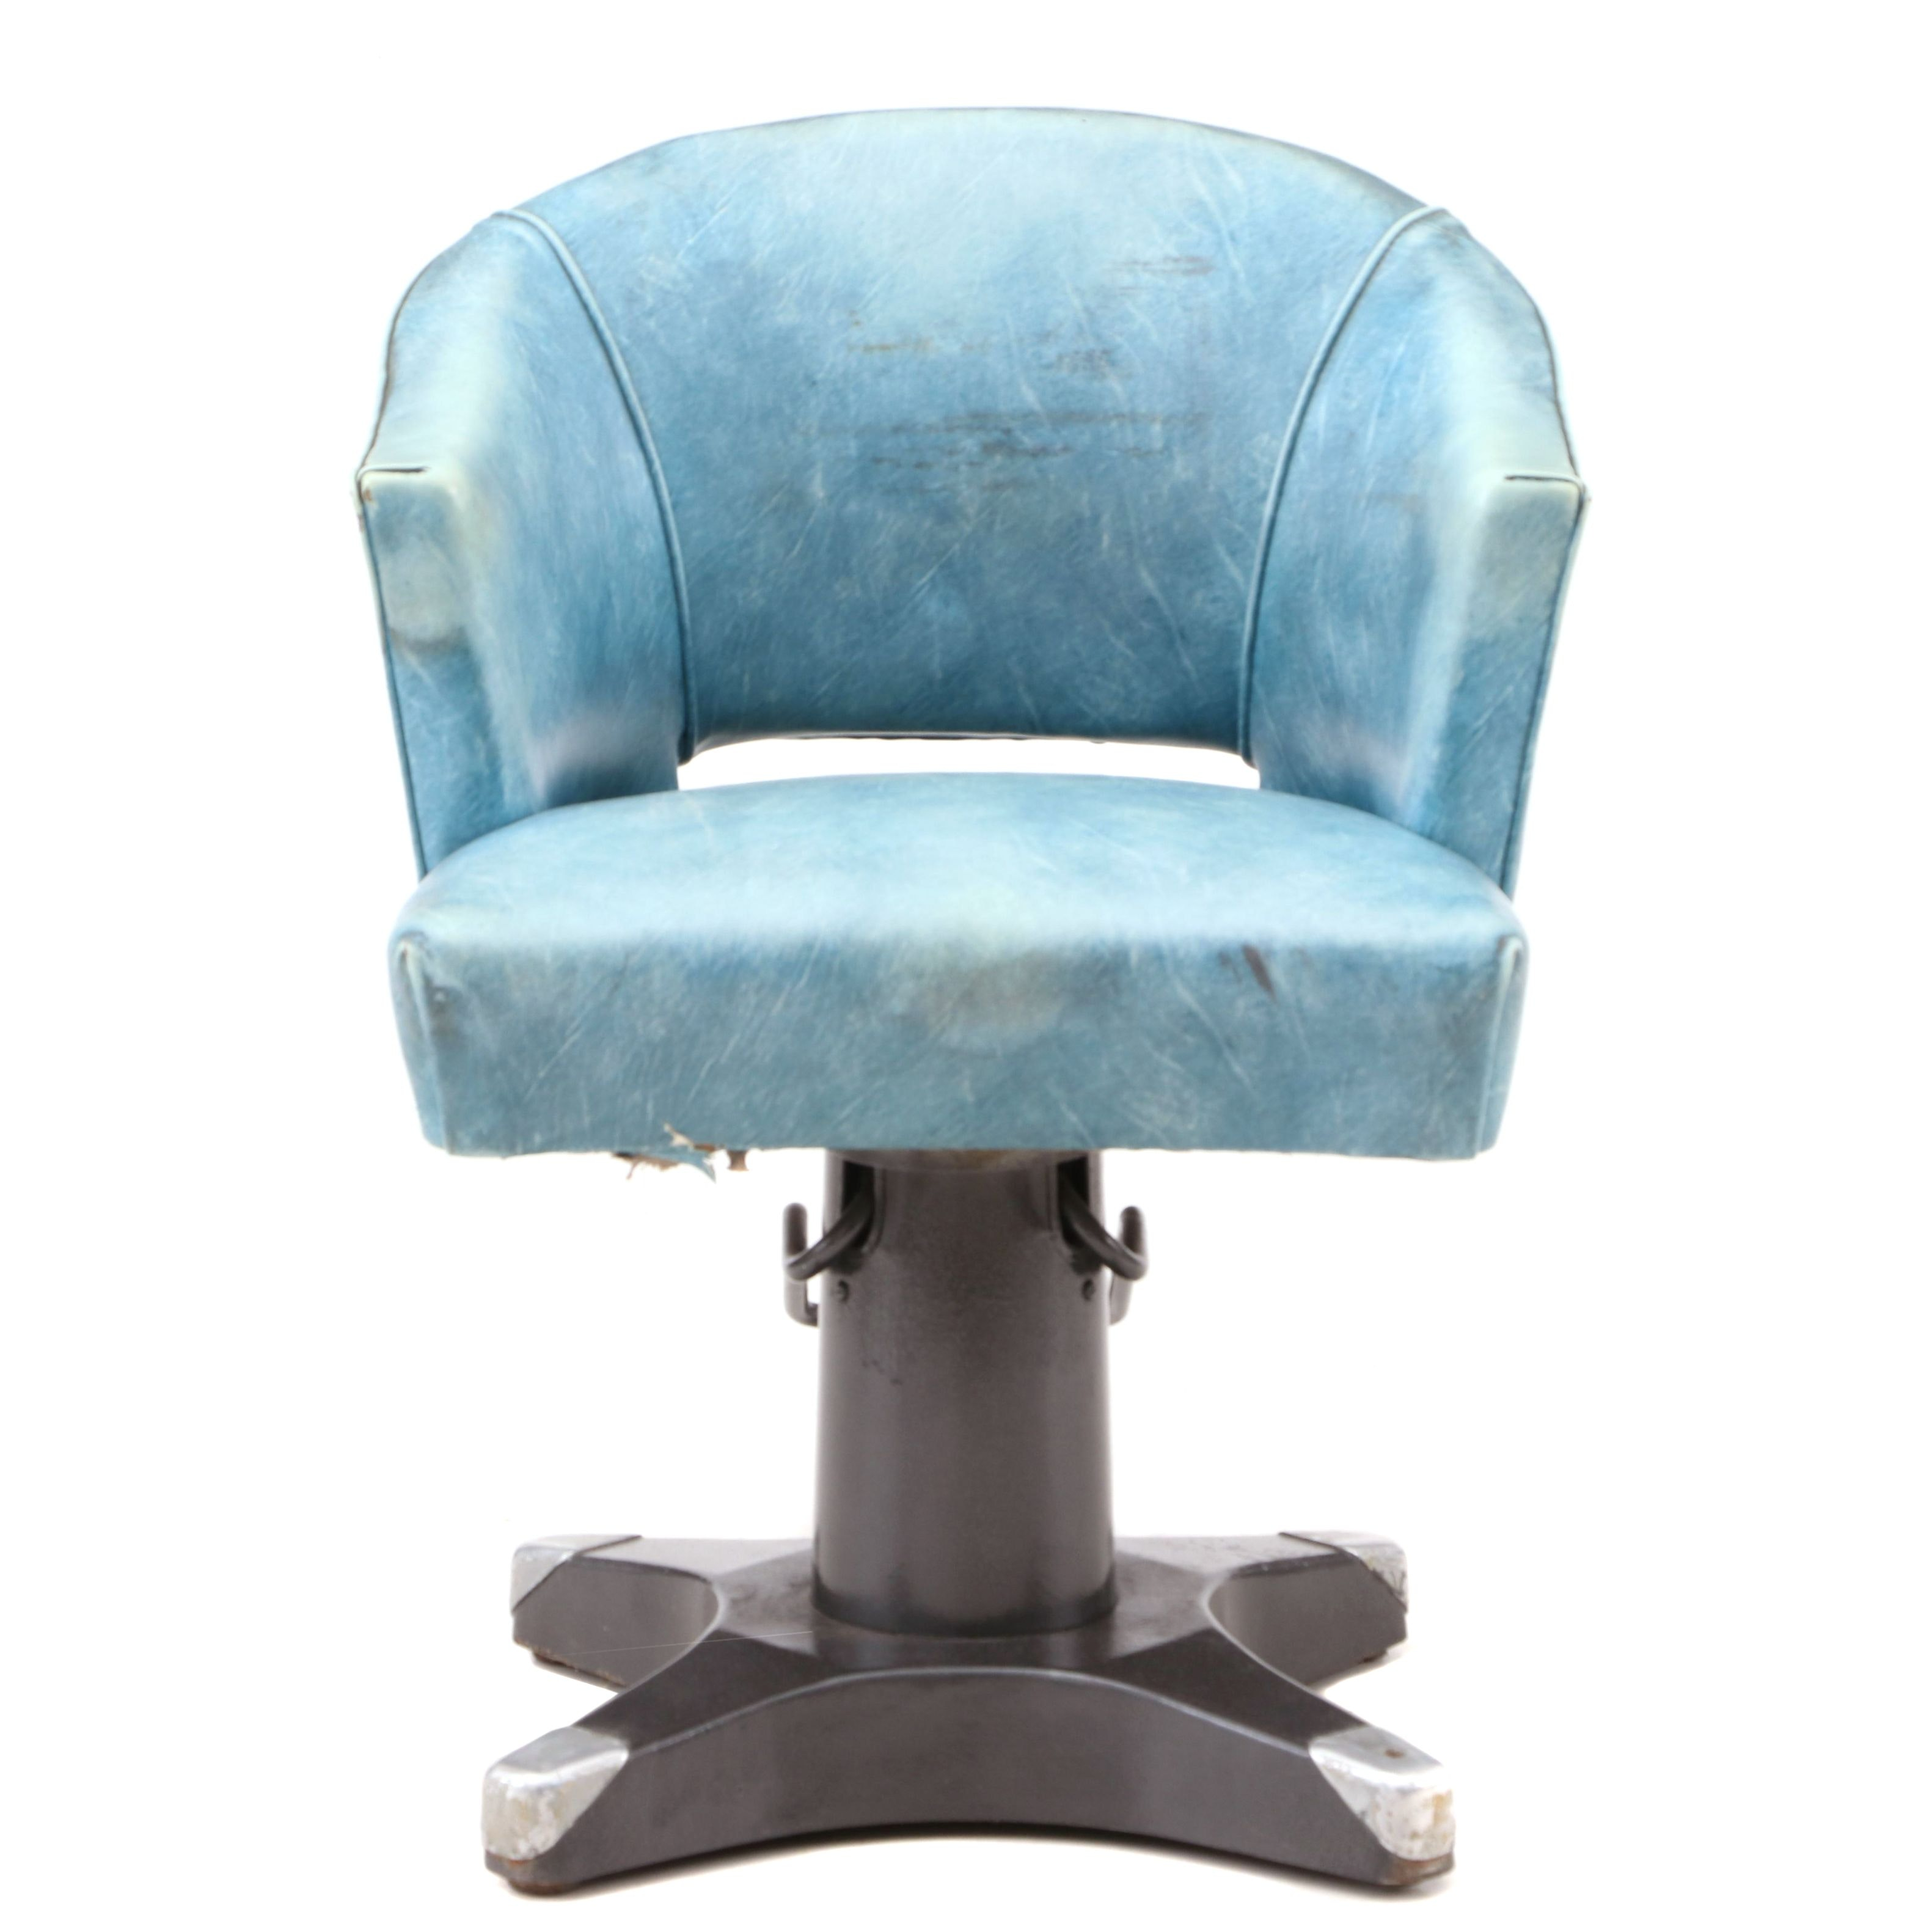 Barber's Chair, Mid-20th Century